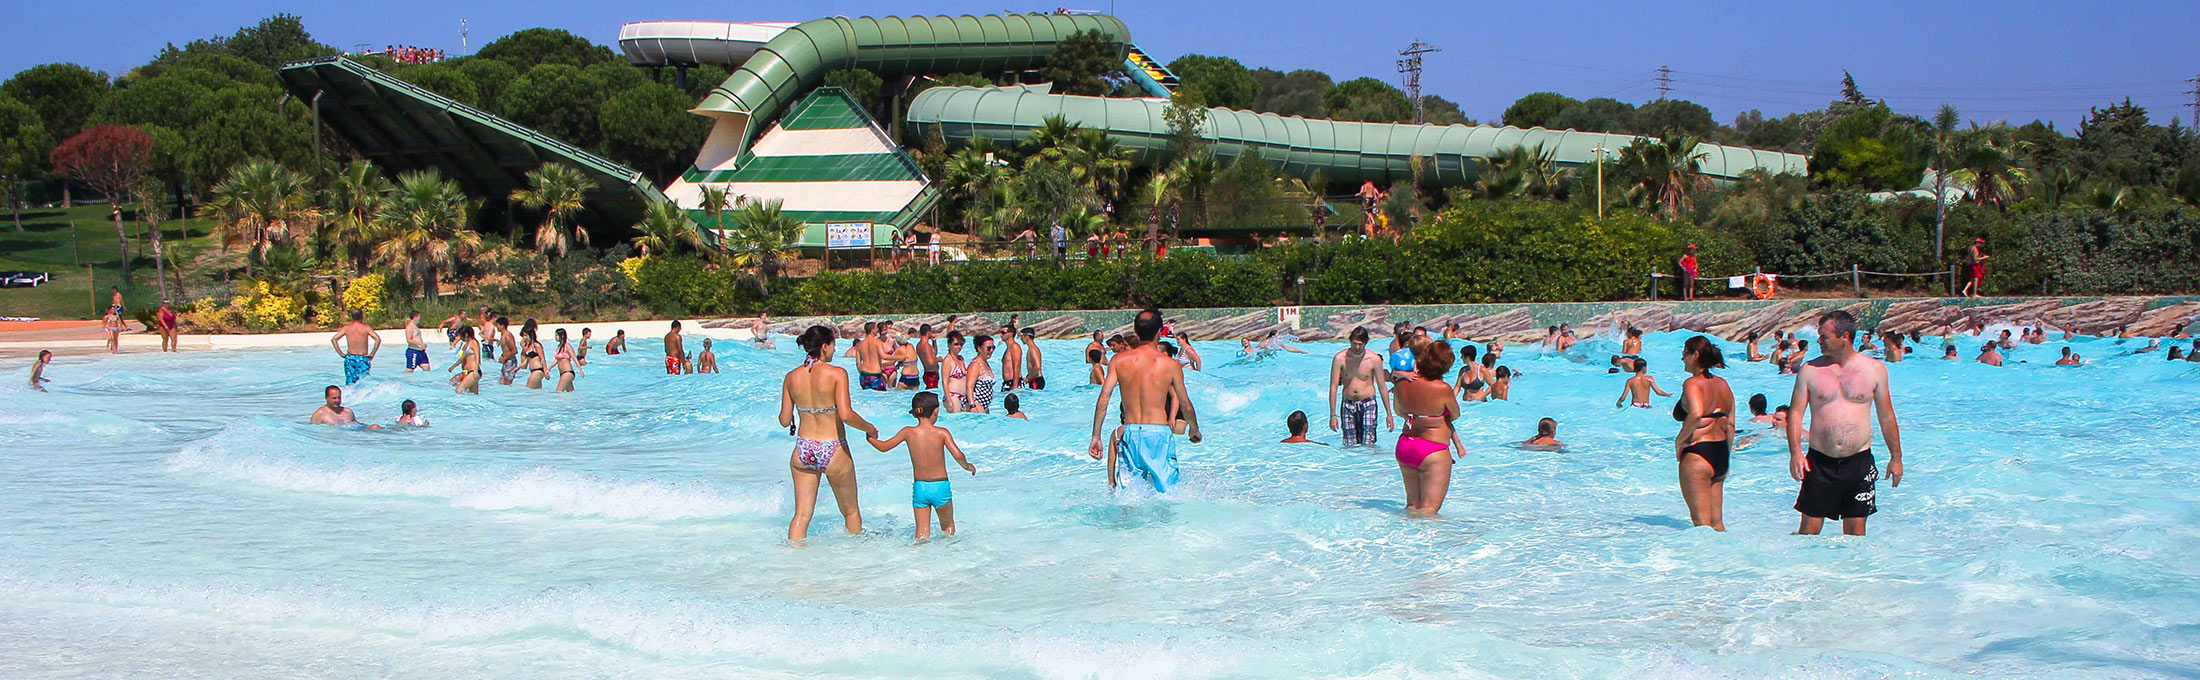 Aquatic parc in roses costabrava aquabrava for Aqua piscine otterburn park